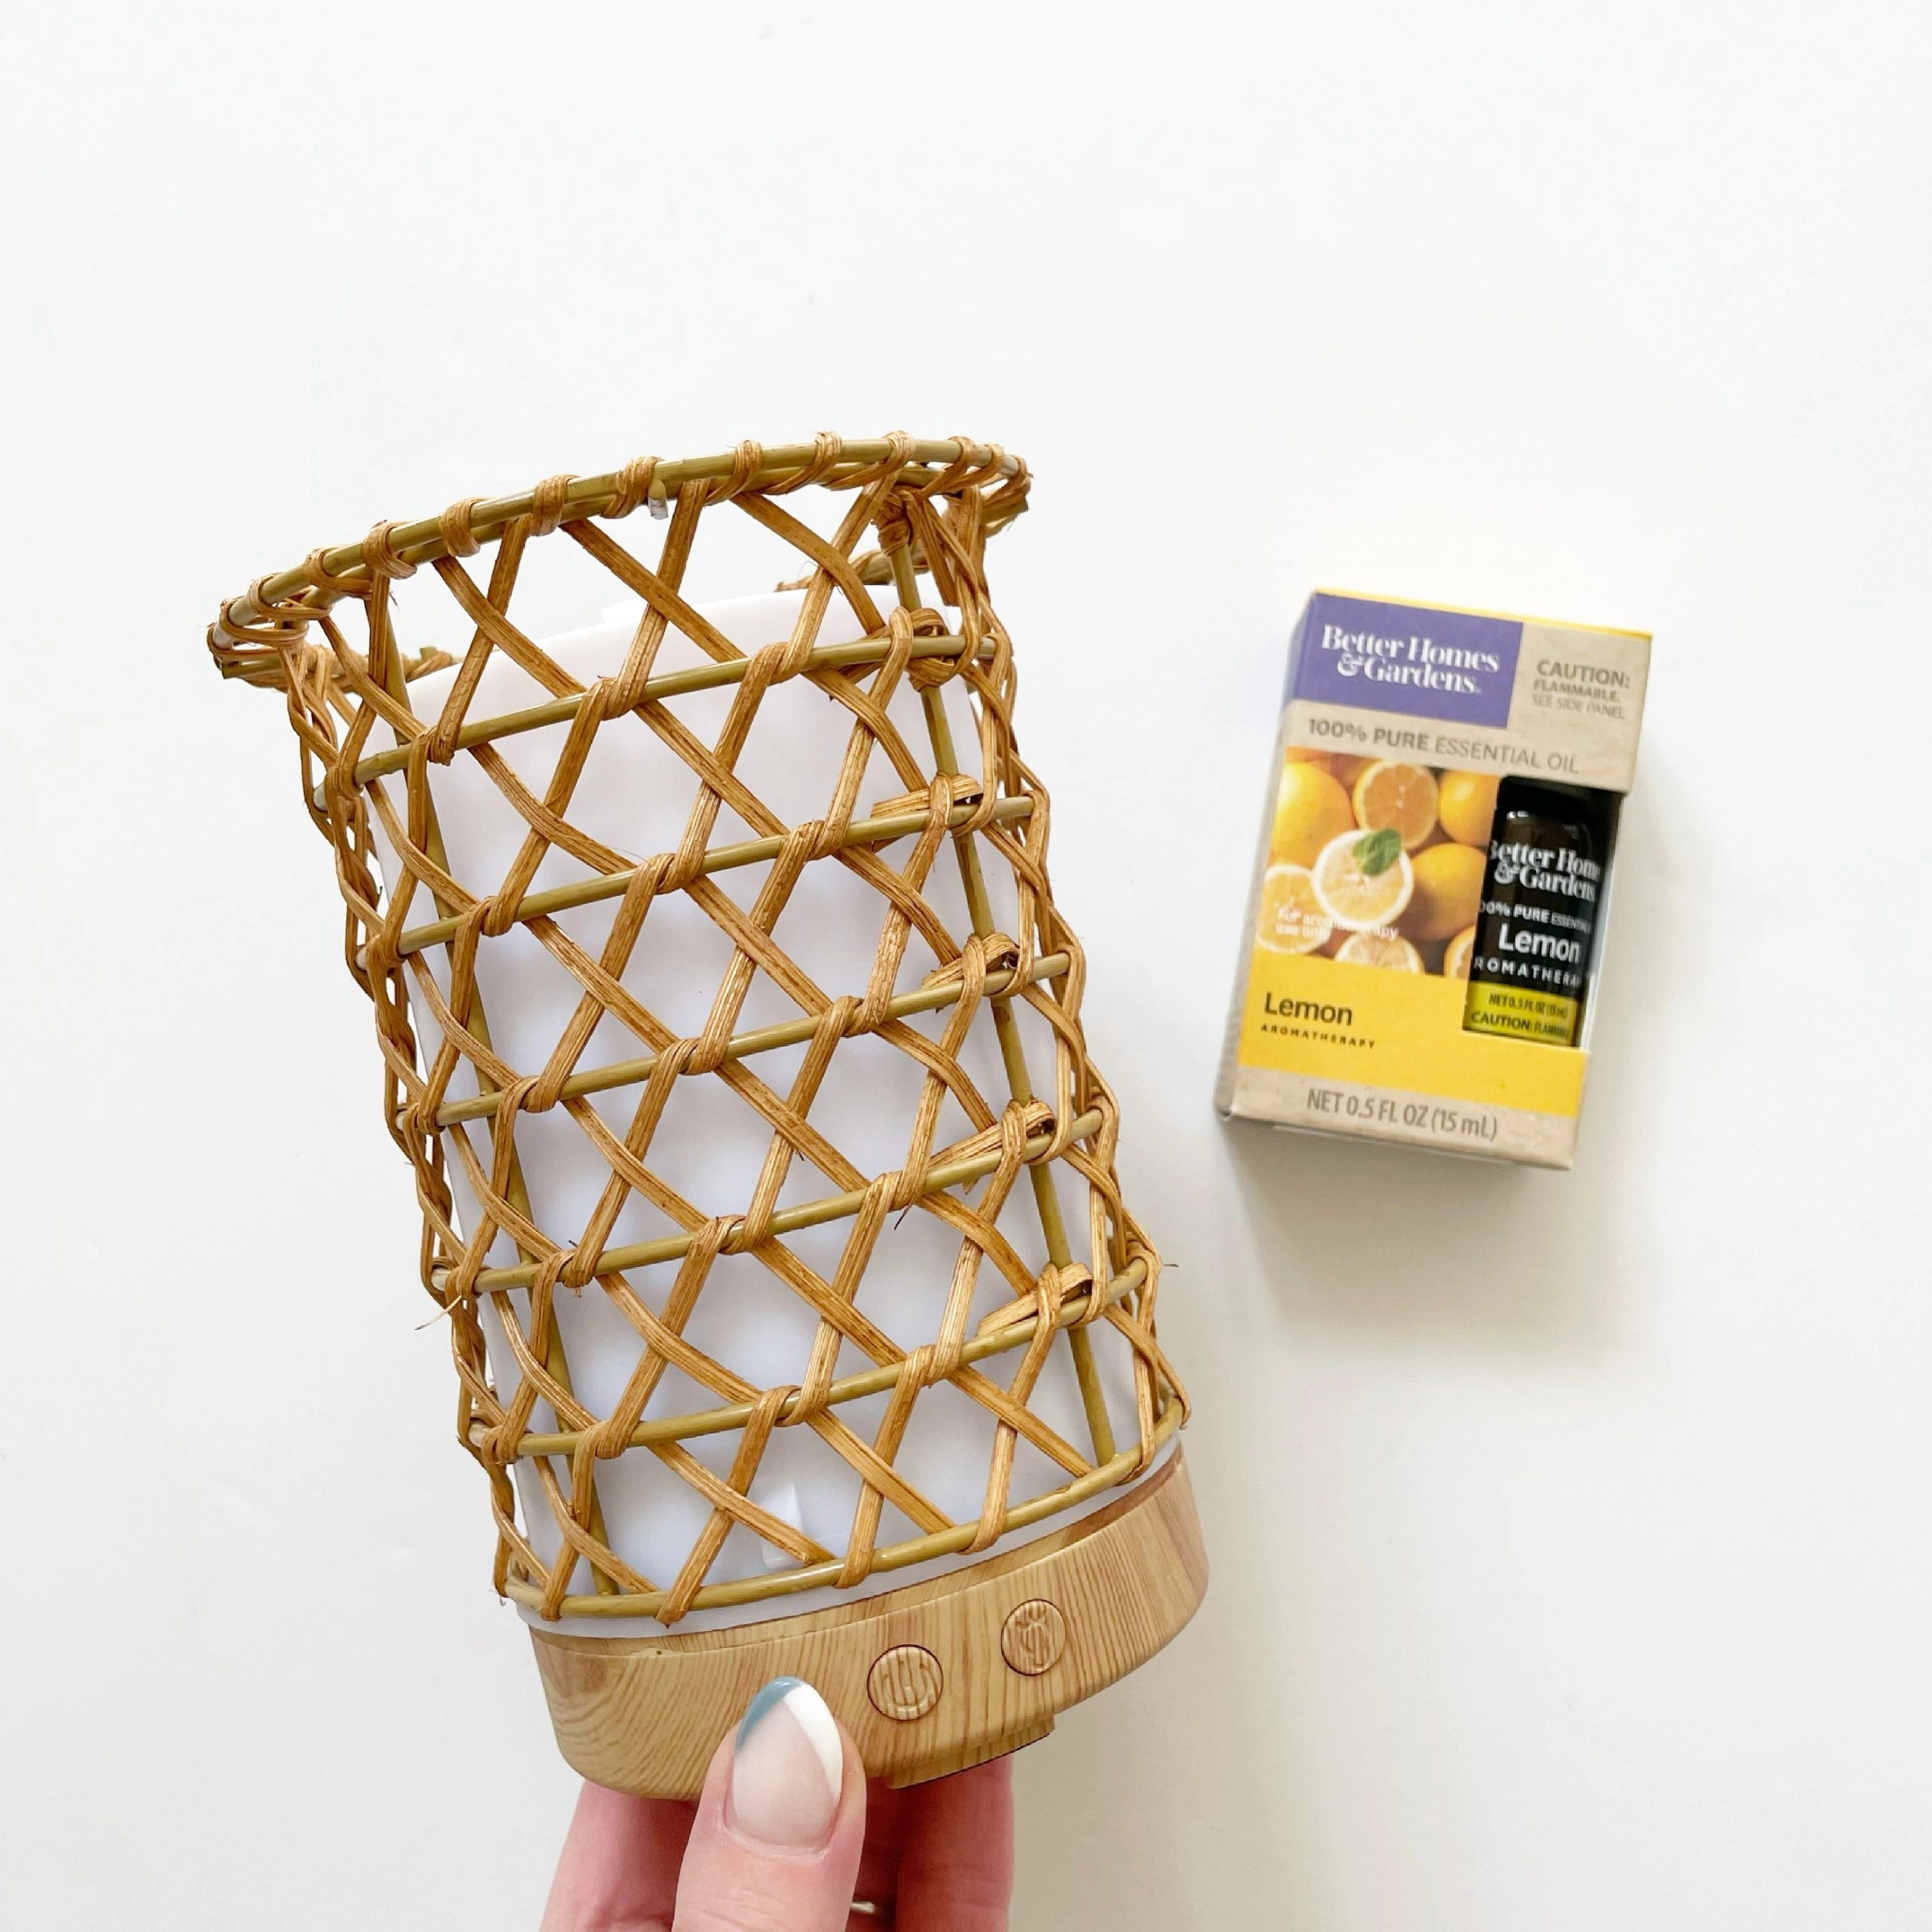 Better Homes & Gardens Woven Rattan Ultrasonic Aroma Diffuser and Essential Oil